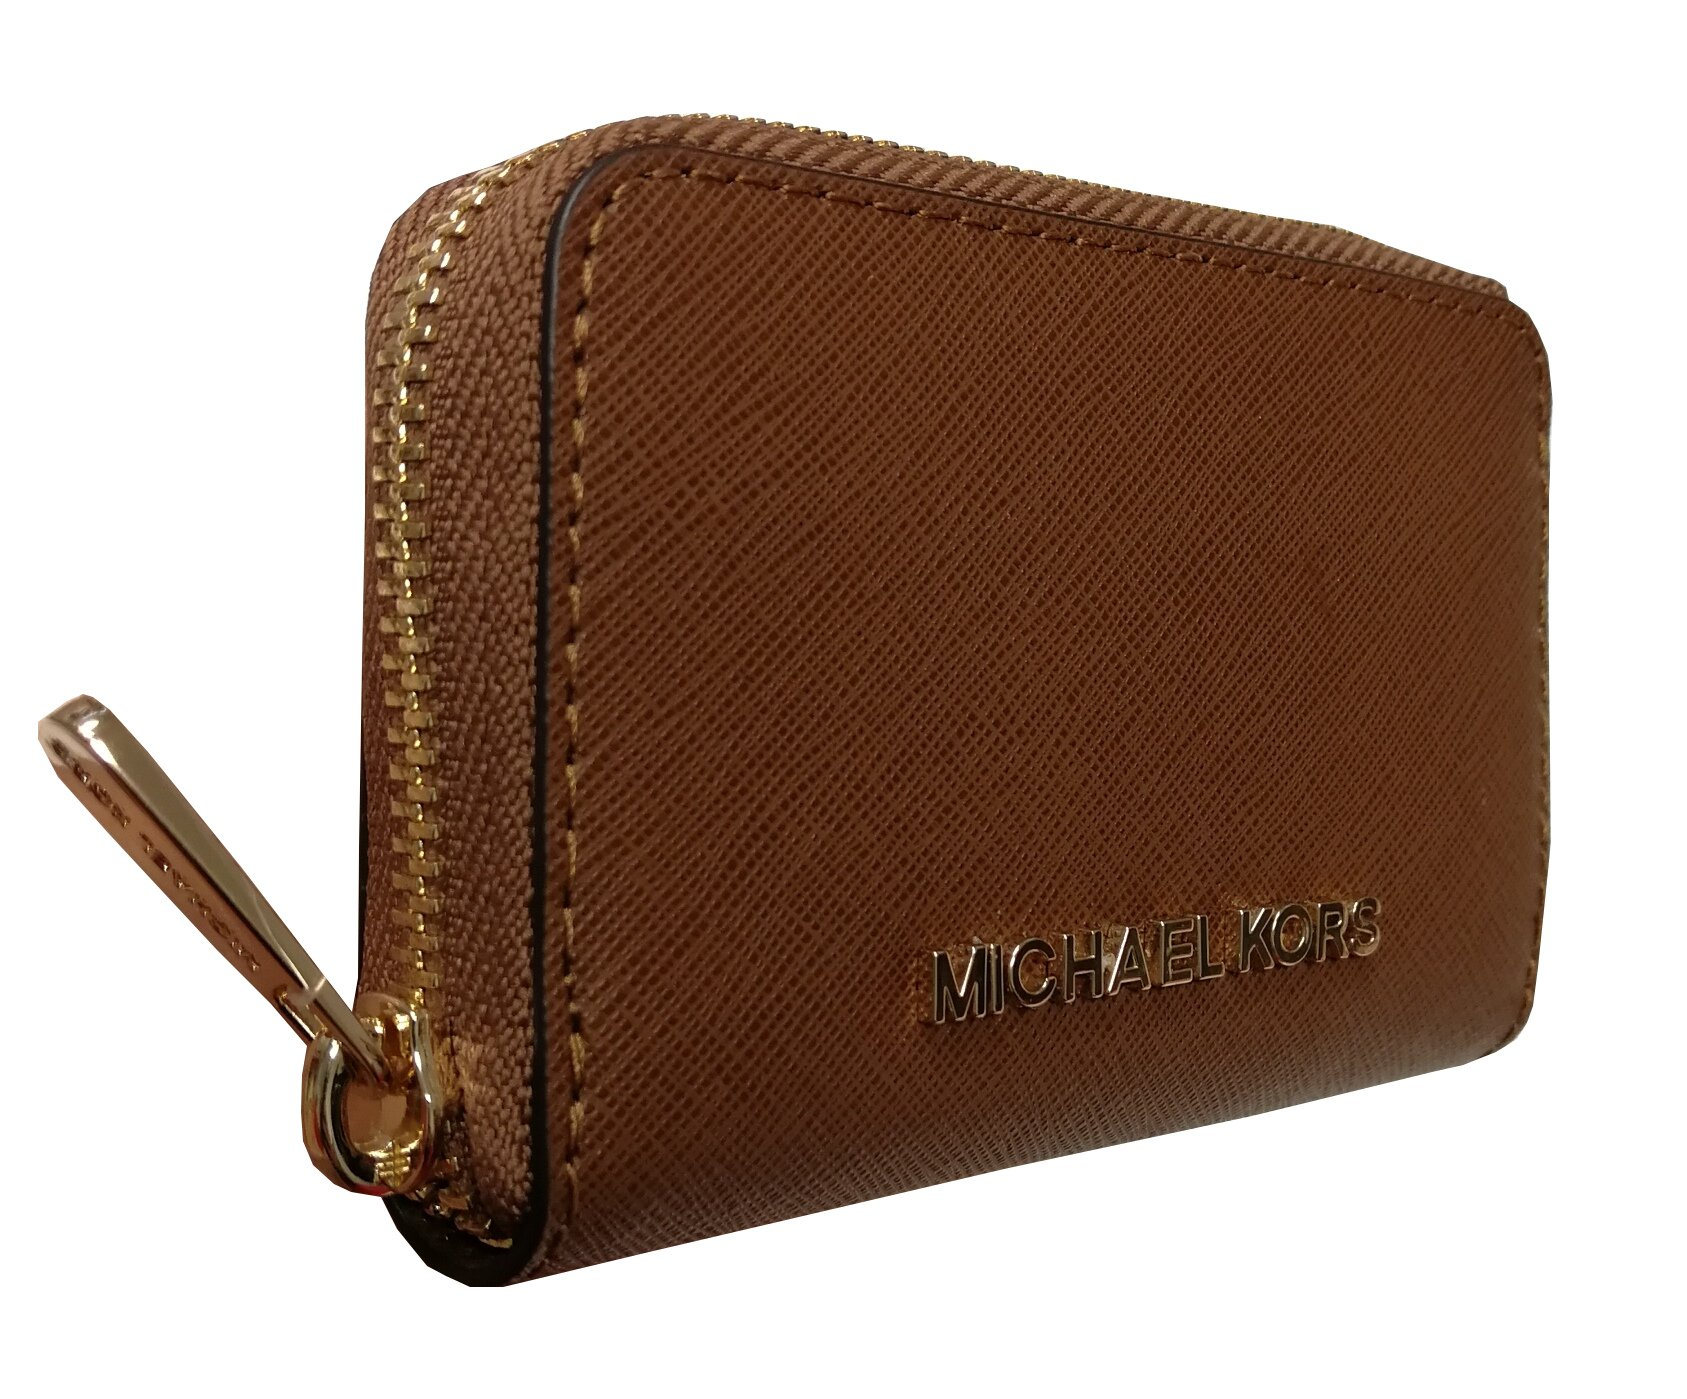 Michael Kors Jet Set Travel Zip Around Coin Case Leather Wallet Luggage by Michael Kors (Image #3)